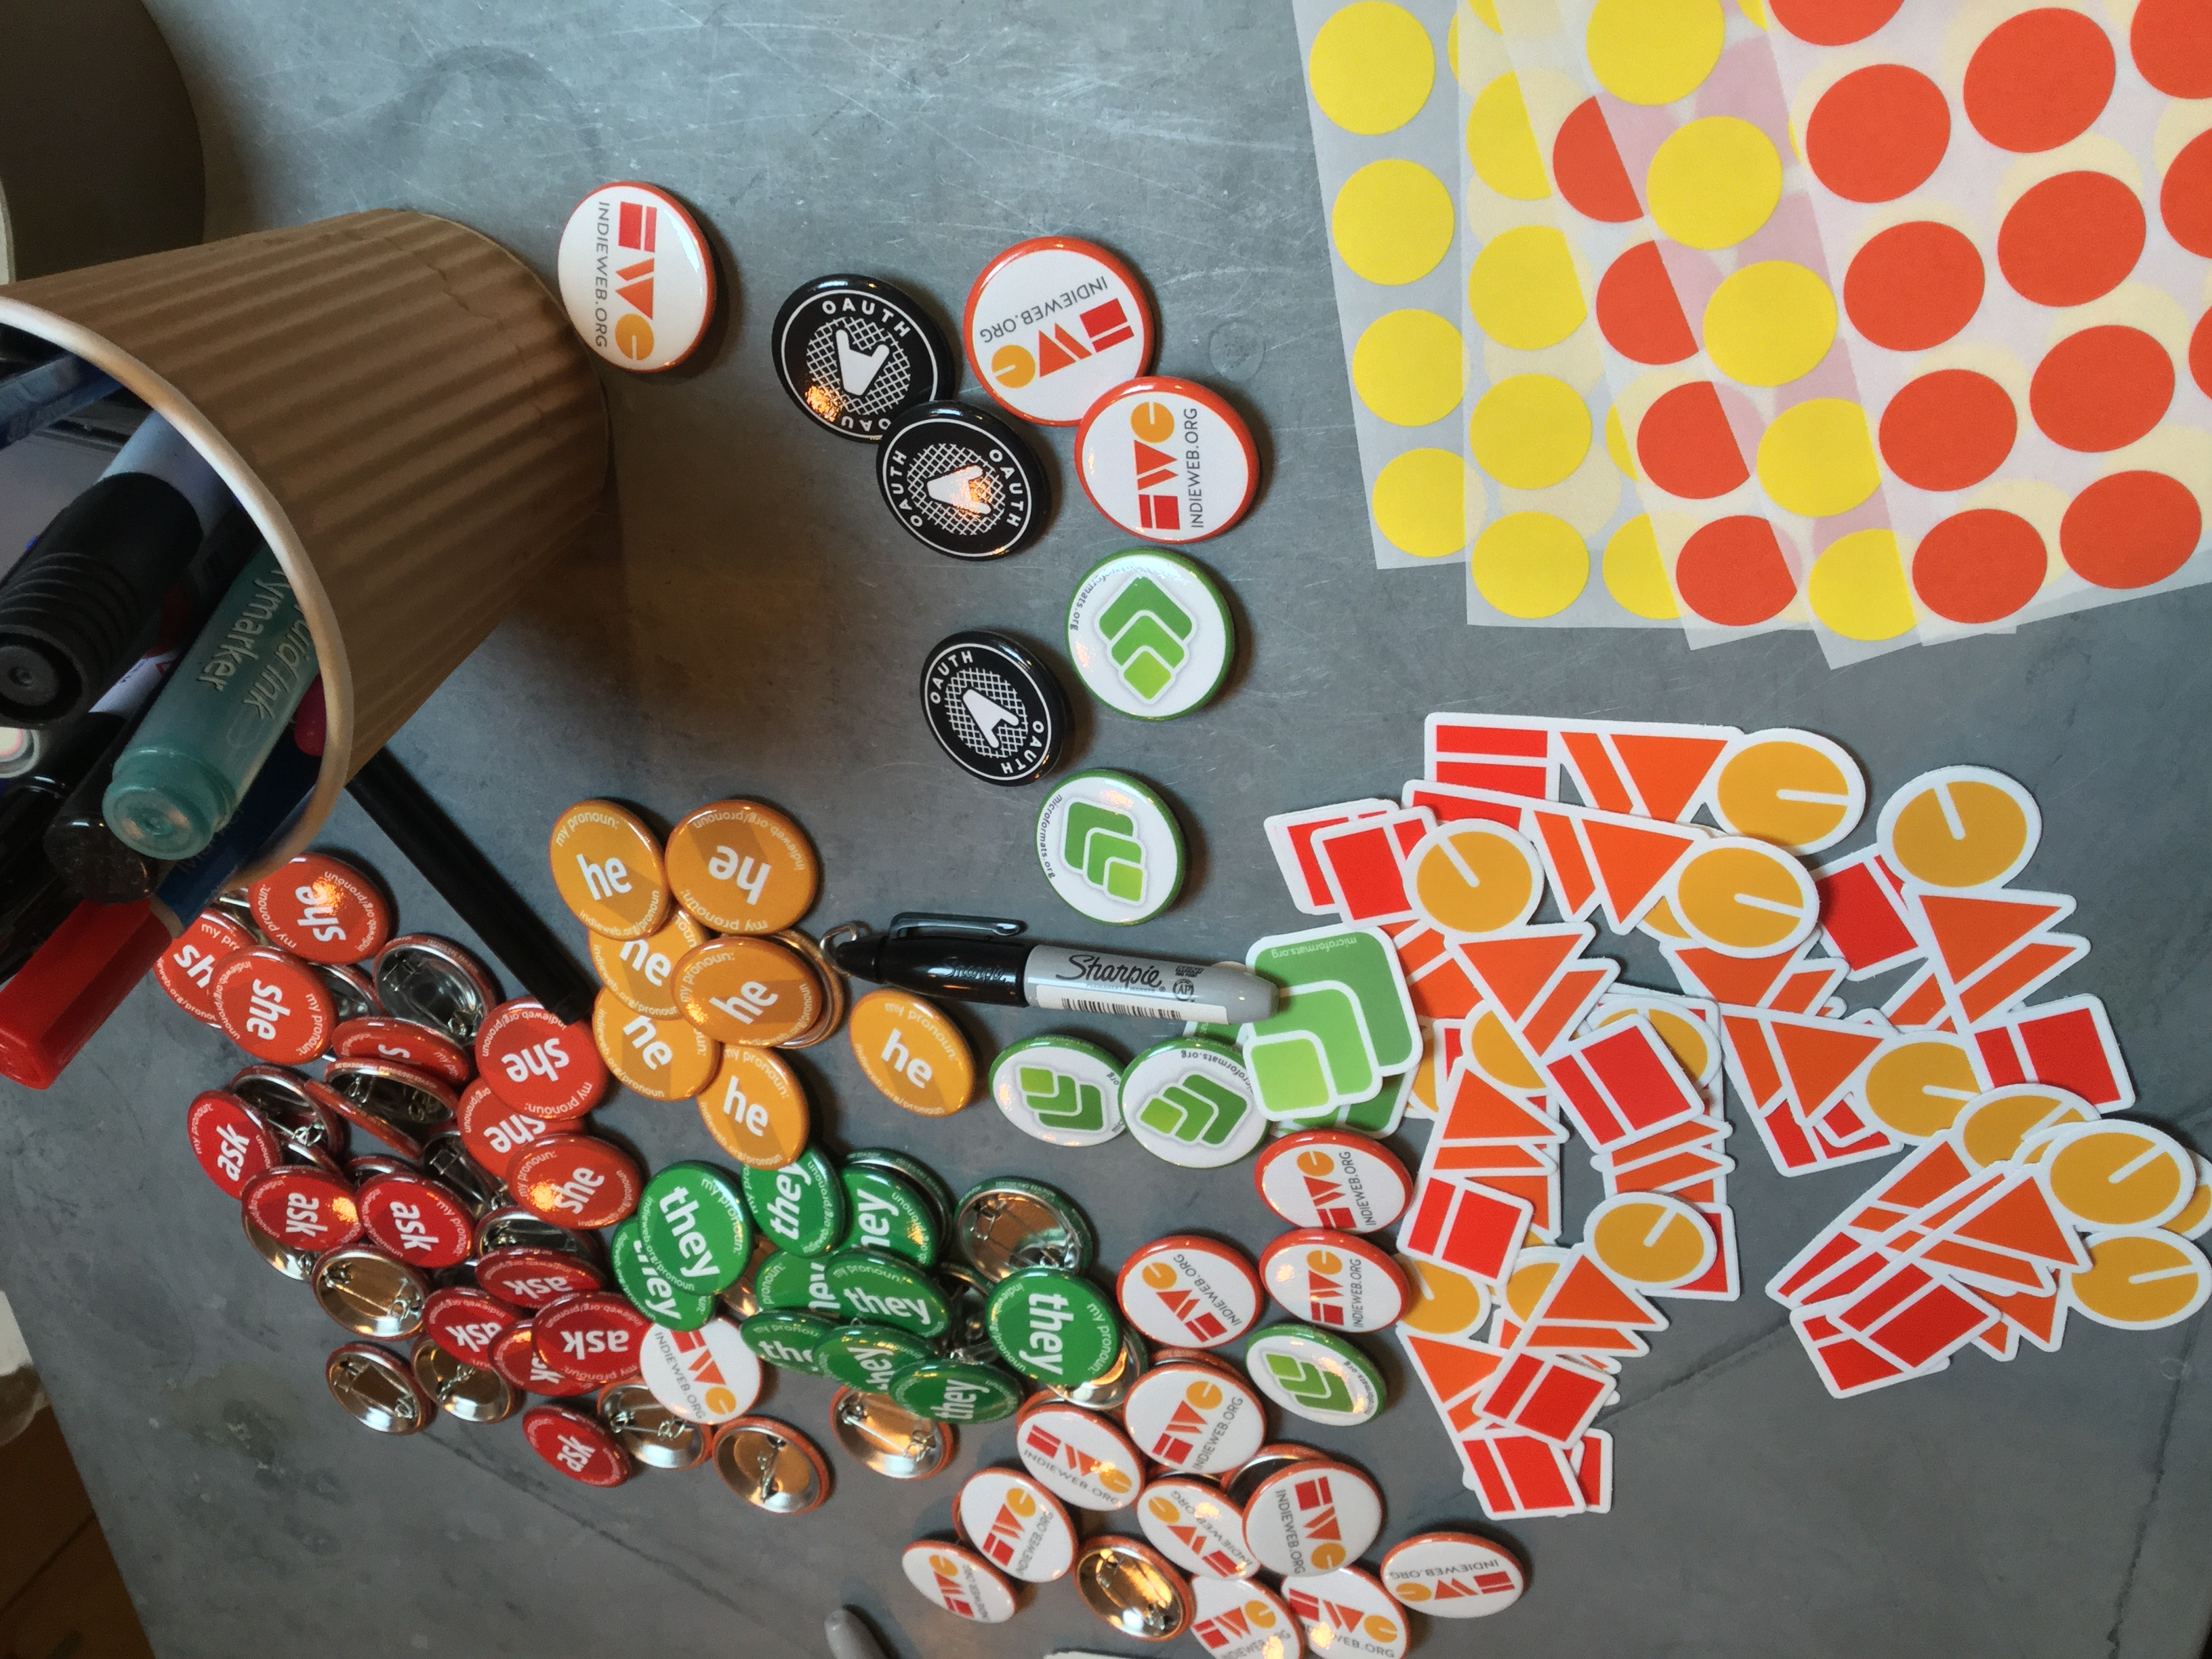 IndieWeb pins and stickers at IndieWebCamp Brighton registration